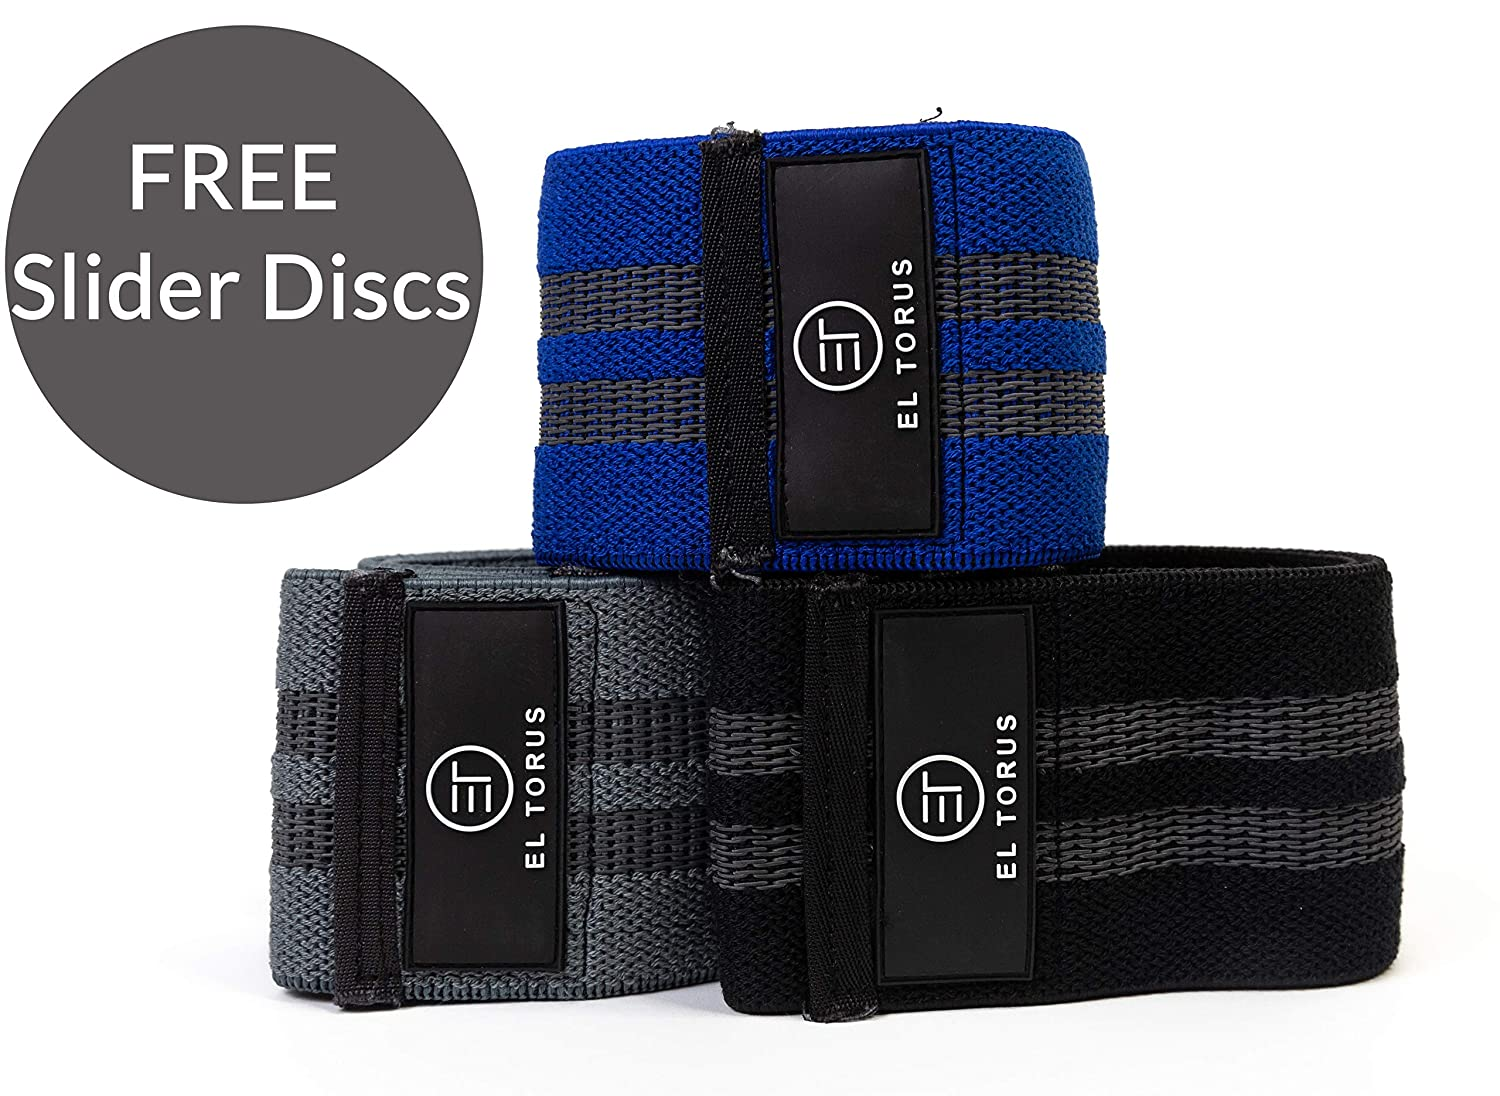 El Torus Hip Resistance Cotton Bands Set of 3 and Dual-Sided Exercise Gliding Slider Discs Perfect for Yoga, Crossfit, The Gym, Pilates, Glutes, Booty, Abs and core Workouts